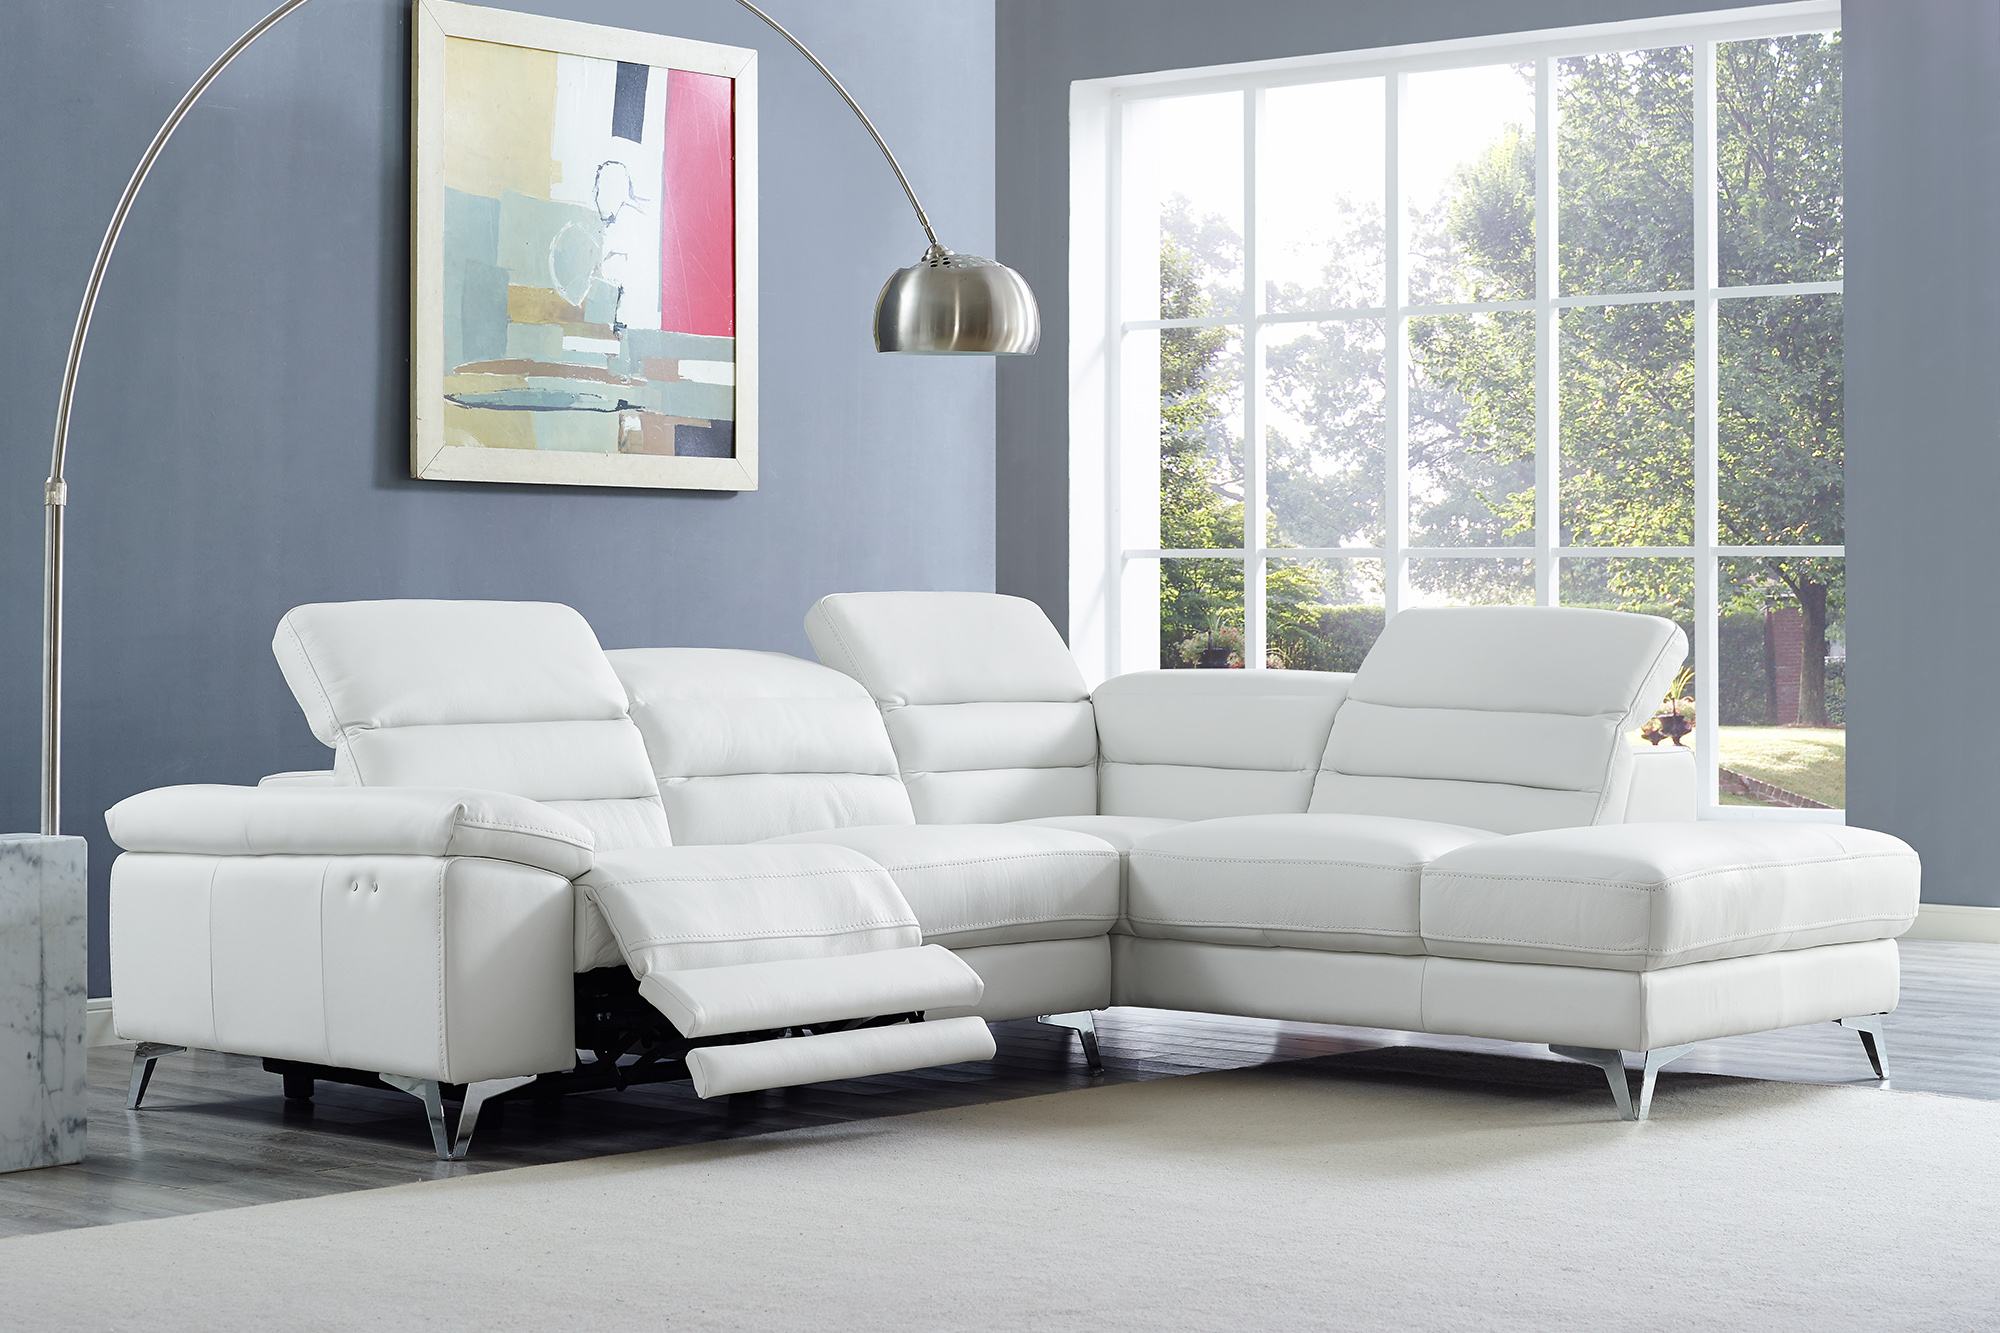 Leather Sectional Sofa Recliner Graceful Italian Leather Sectional